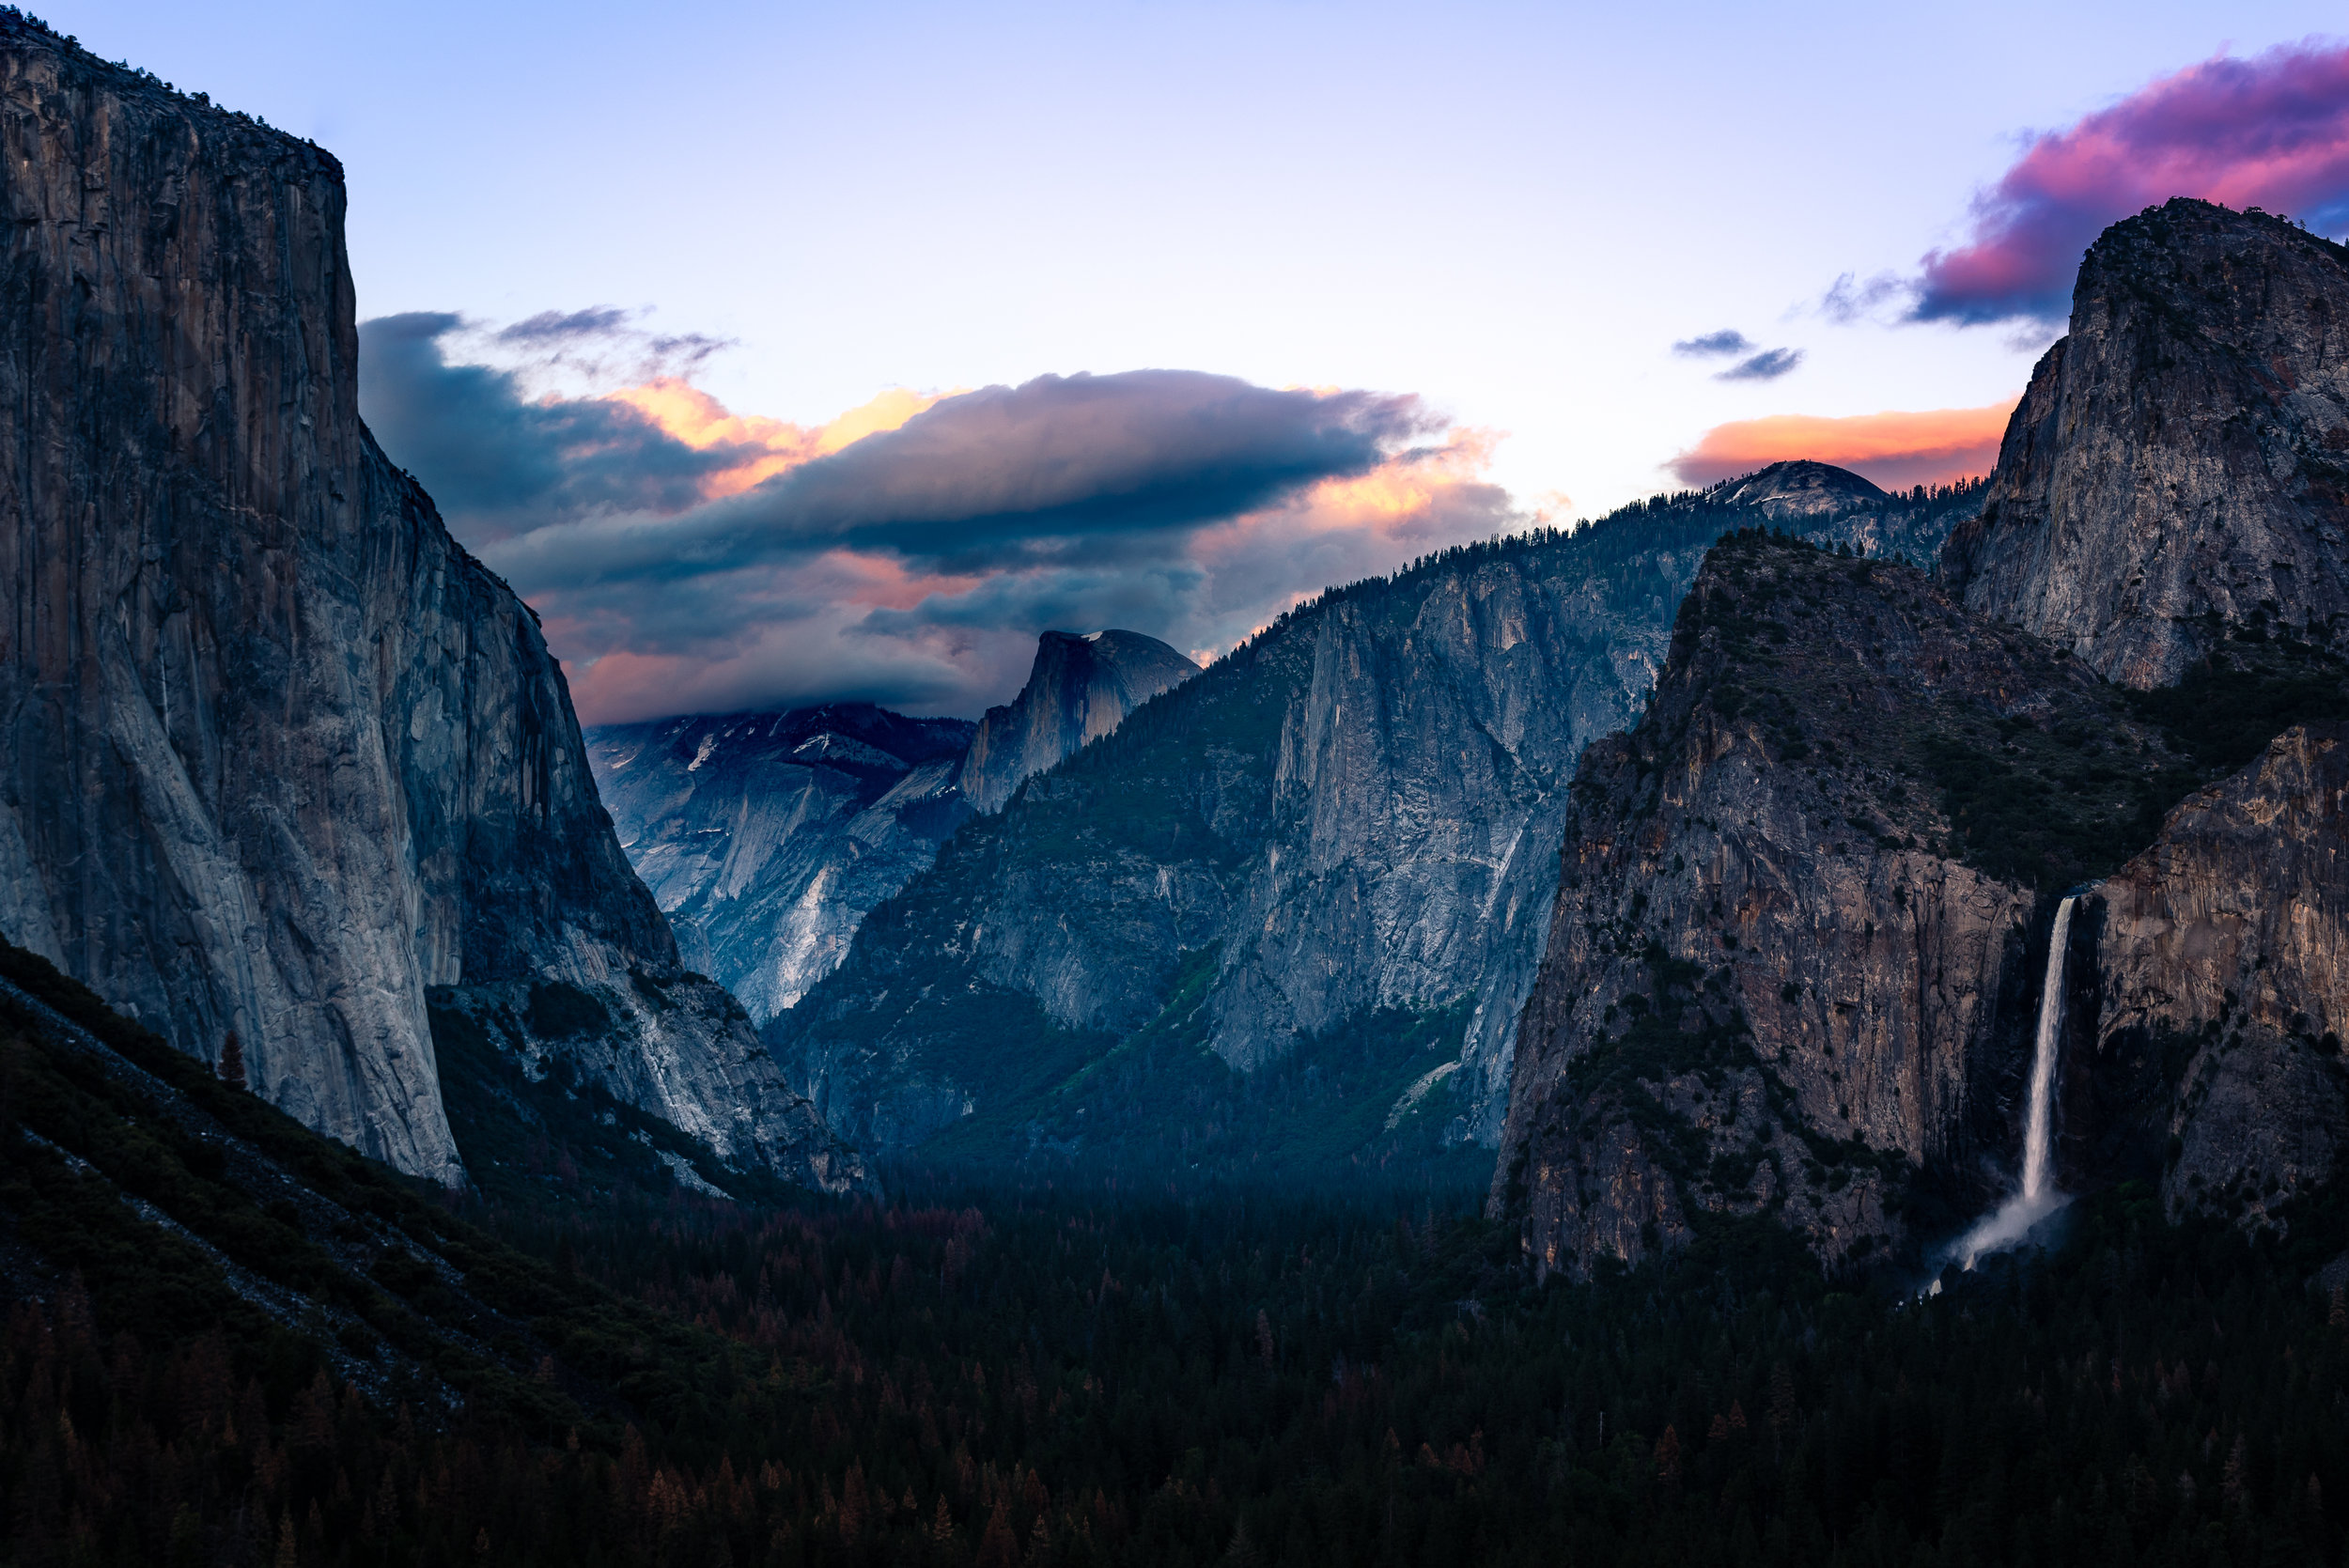 I have a print on Tunnel View in the bathroom as it is the legendary landscape that inspires me to go out and adventure. A good thing to see in the morning!